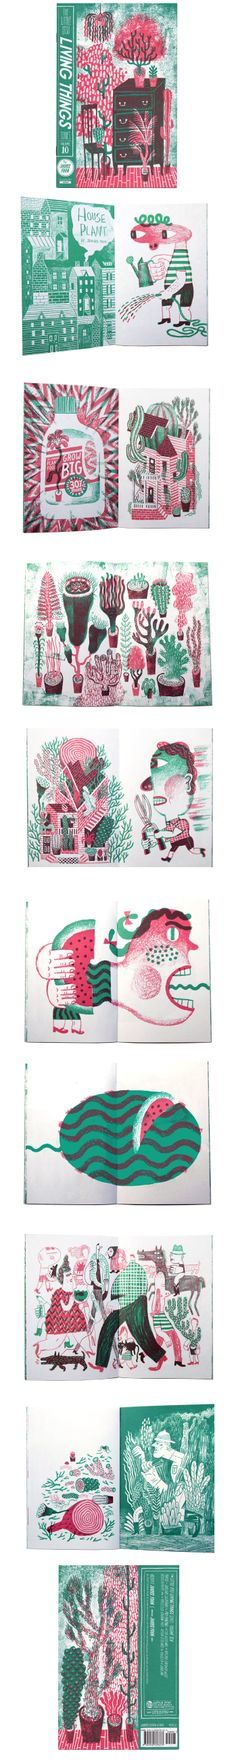 JooHee Yoon colors out of two with translucent inks) Dm Poster, Arte Popular, Grafik Design, Children's Book Illustration, Illustrations And Posters, Graphic Design Inspiration, Book Design, Illustrators, Screen Printing